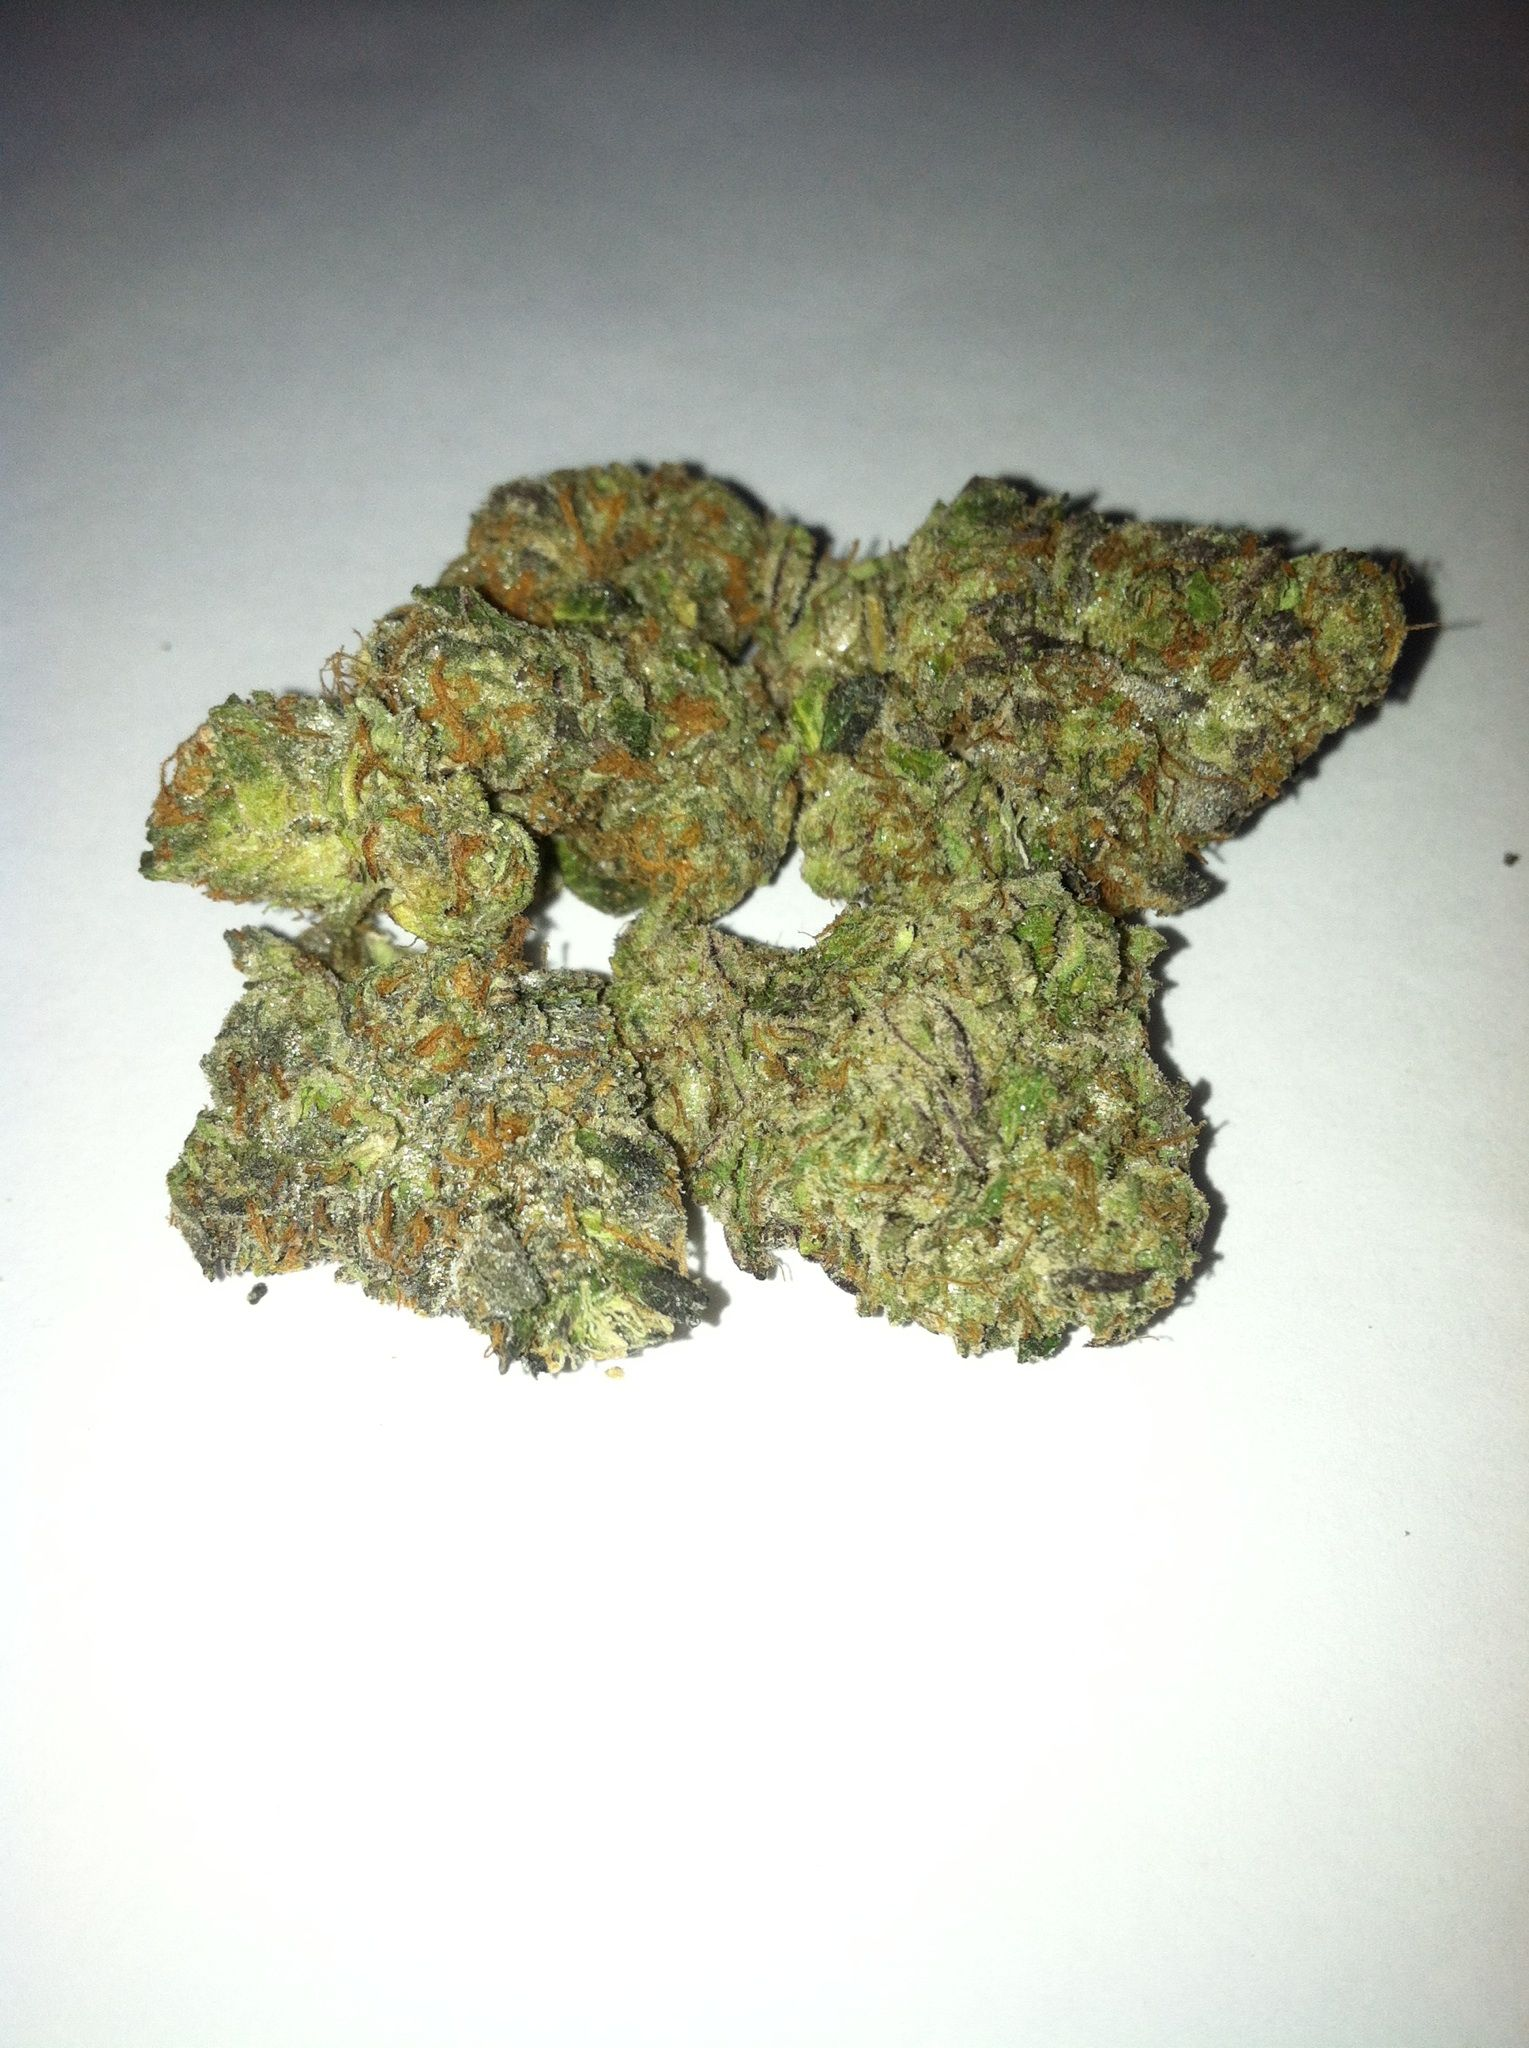 Legalcannabisshop is a Fast, Friendly, Discrete, Reliable cannabis online dispensary which ships top grade bud around the world. Buy marijuana Online USA and Buy marijuana online UK or general Buying marijuana online has been distinguished by the superior quality of our products and by our overall focus on wellness and wide variety of marijuana strains for recreational use. Go to …. https:// www.legalcannabisshop.com Text or call +1 (908)485-7293